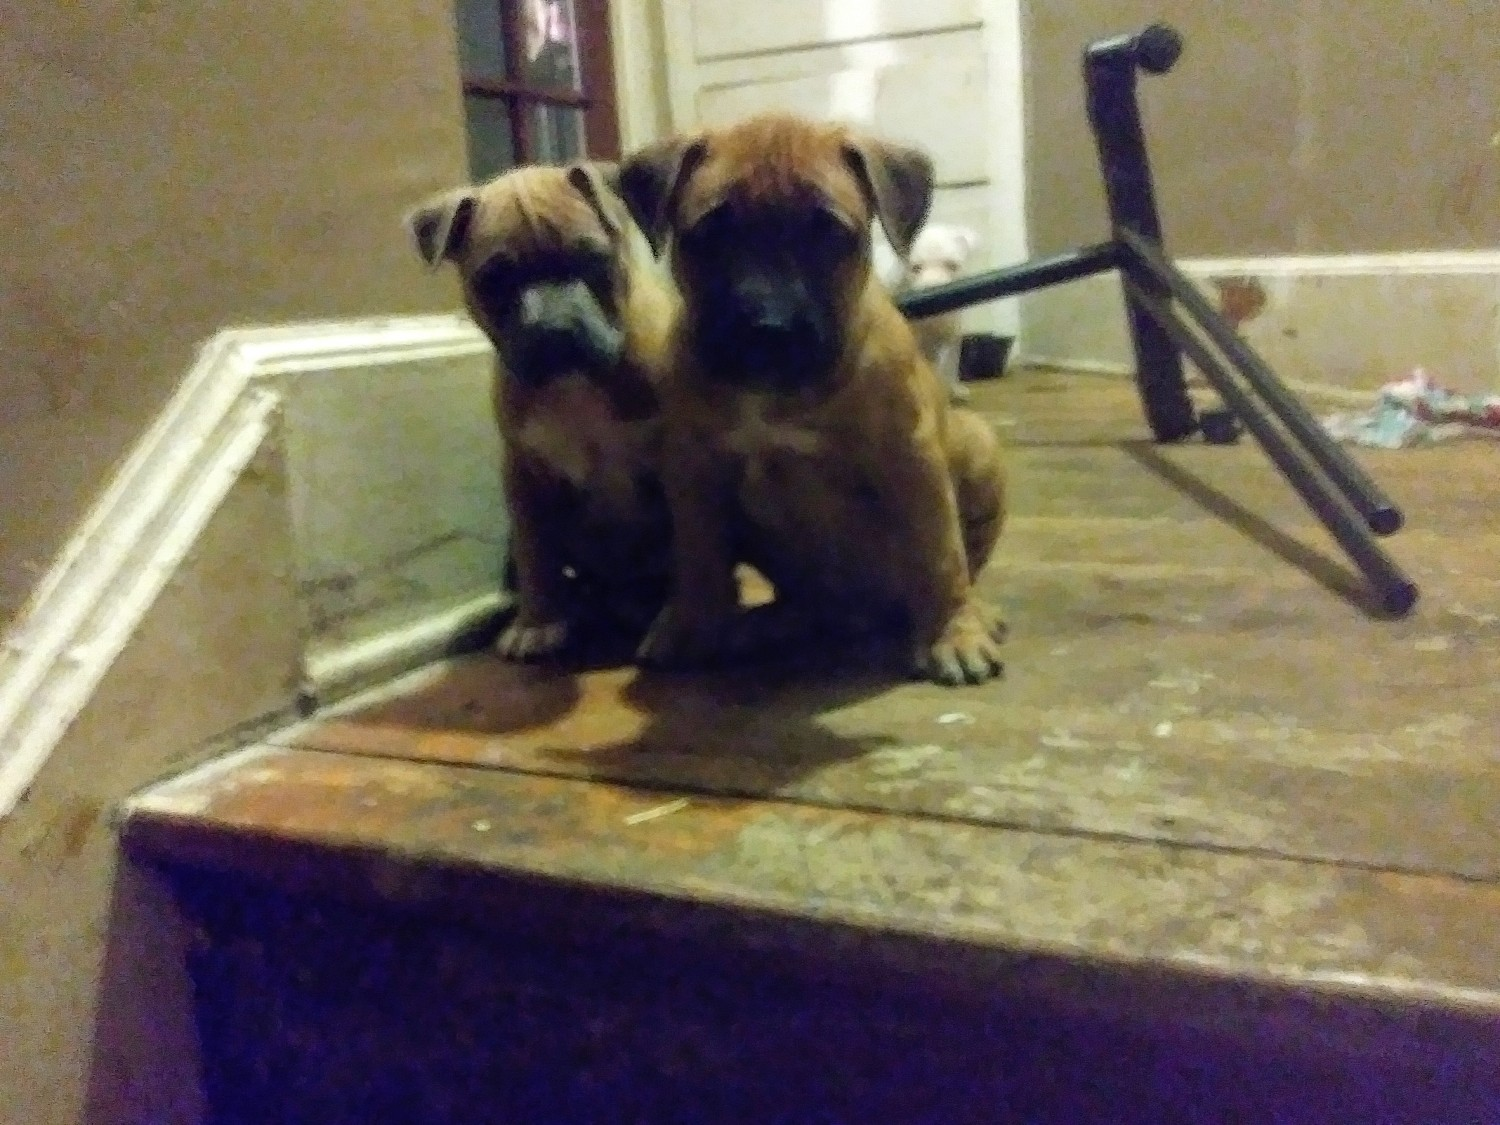 American Pit Bull Terrier Puppies For Sale | Detroit, MI ... | 4160 x 3120 jpeg 3134kB